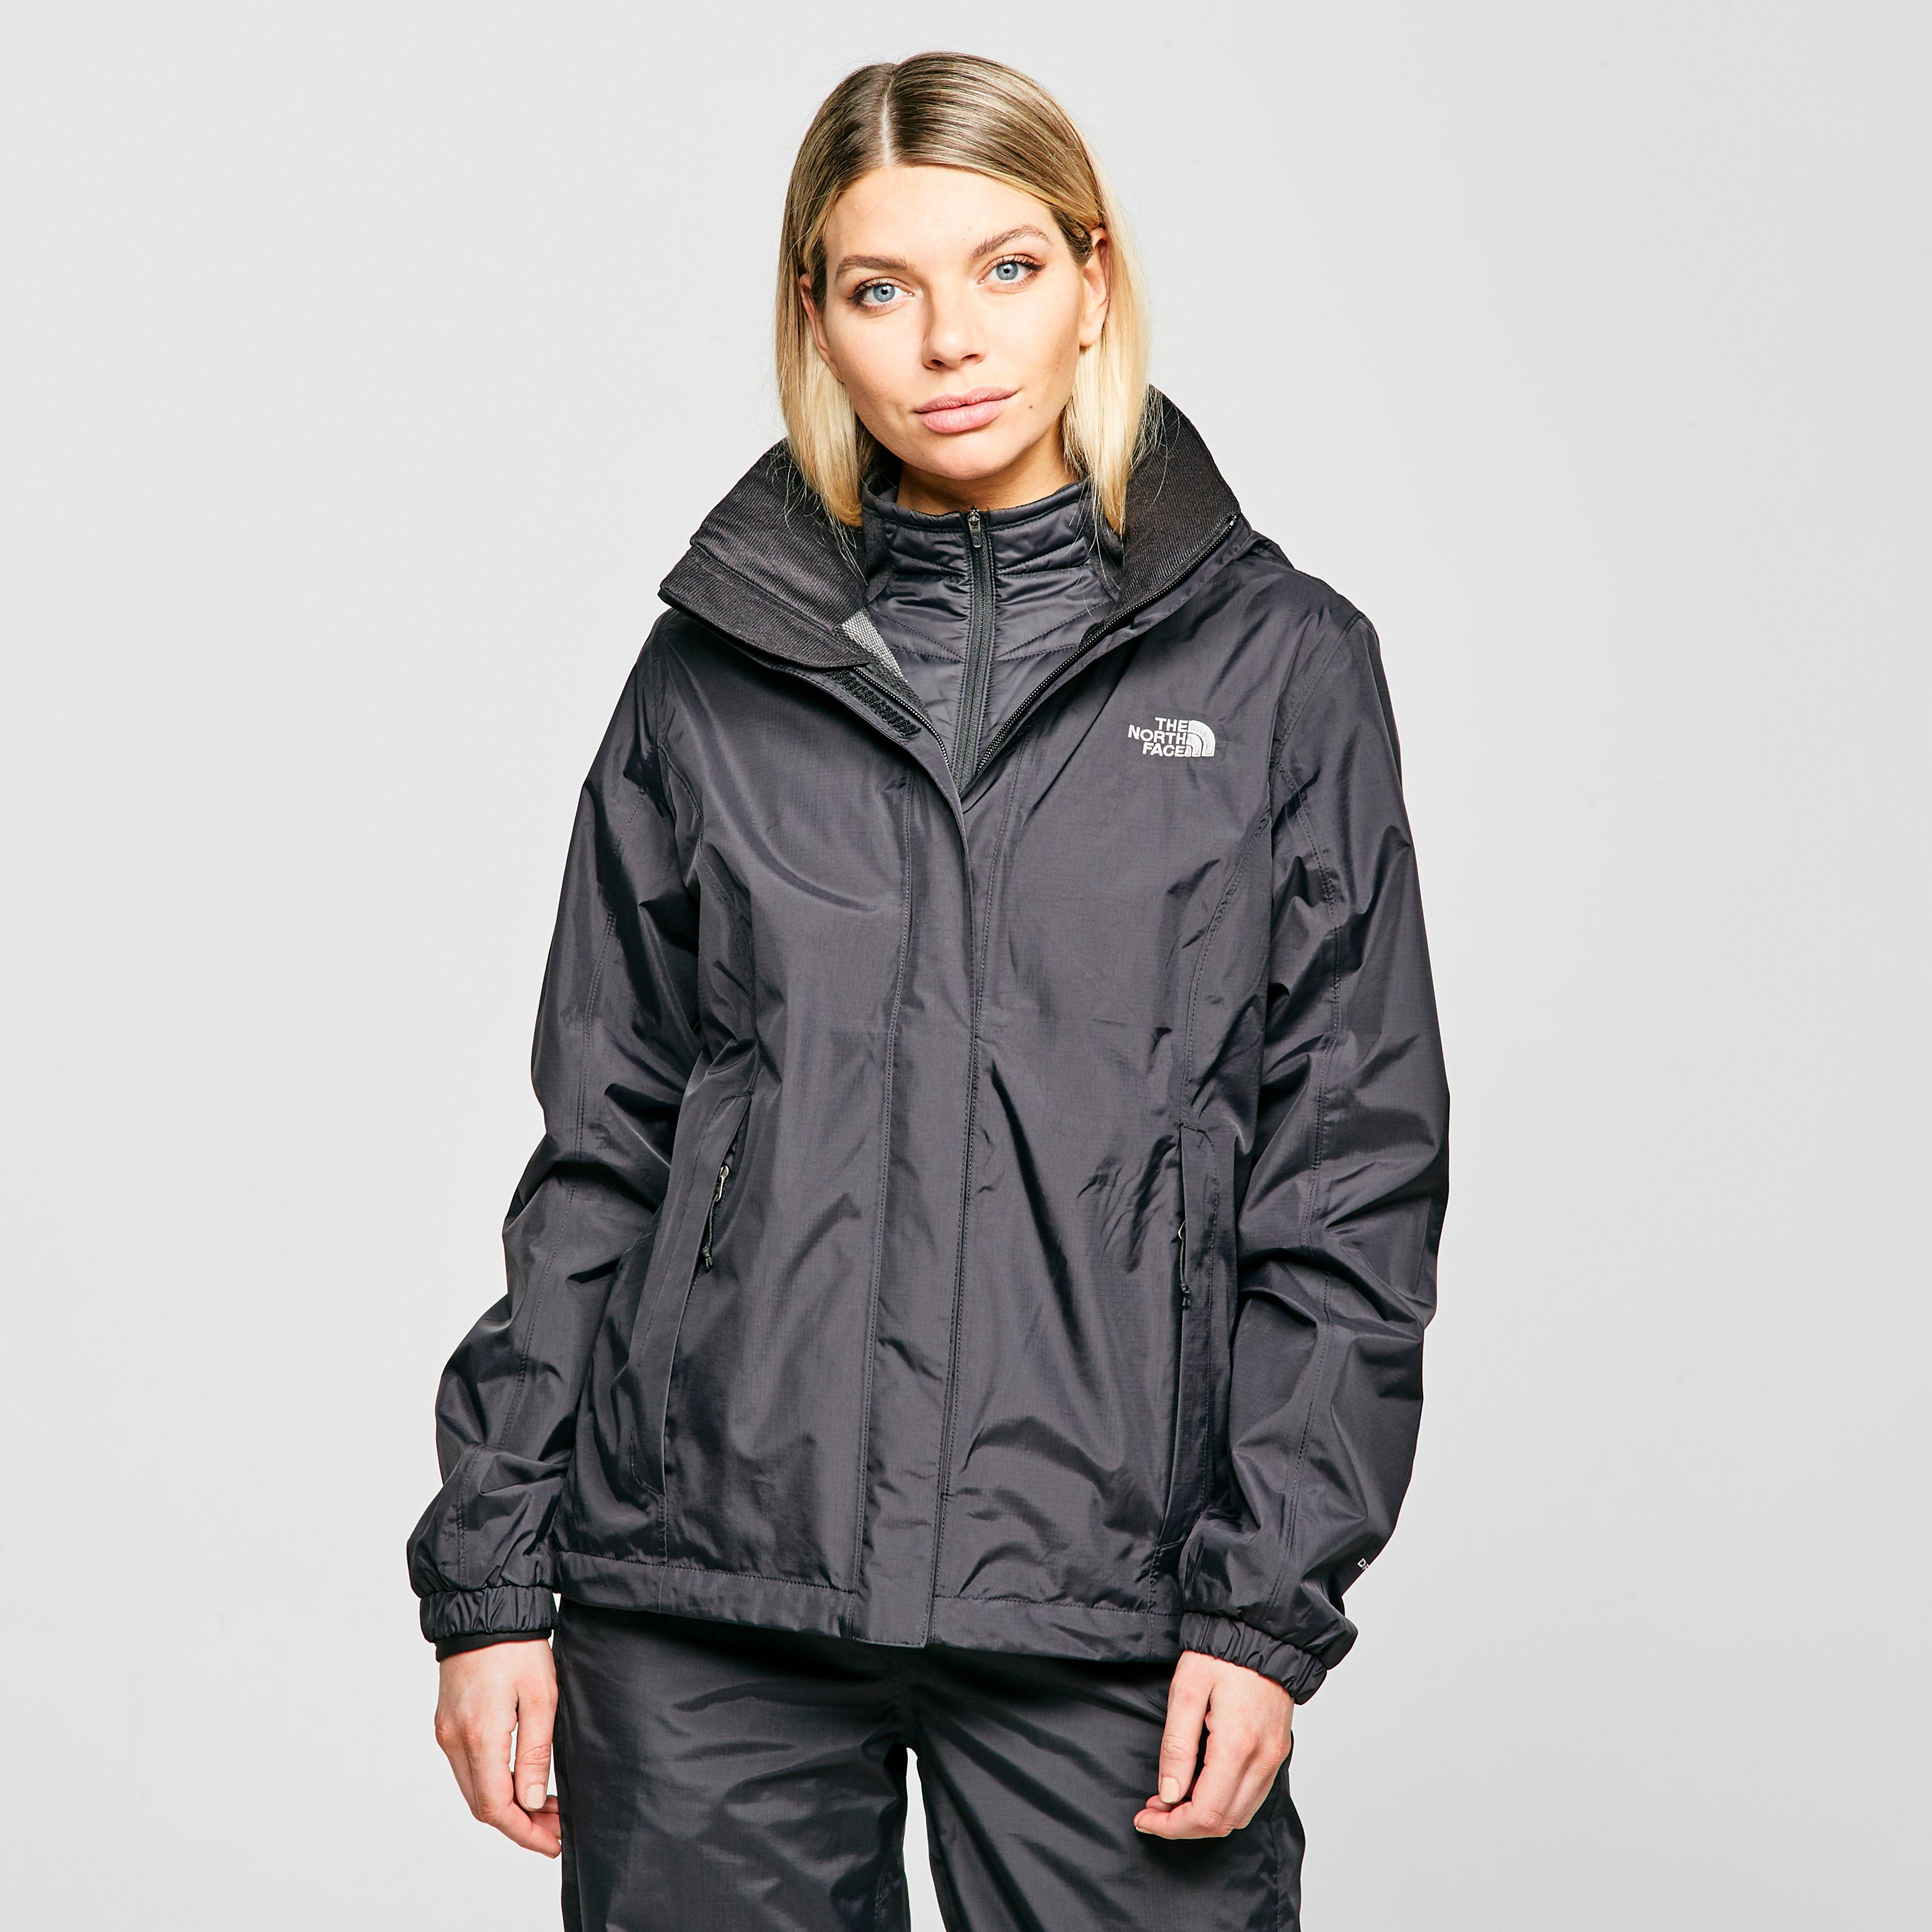 adfd299f14cd Black THE NORTH FACE Women s Resolve HyVent™ Jacket image 1